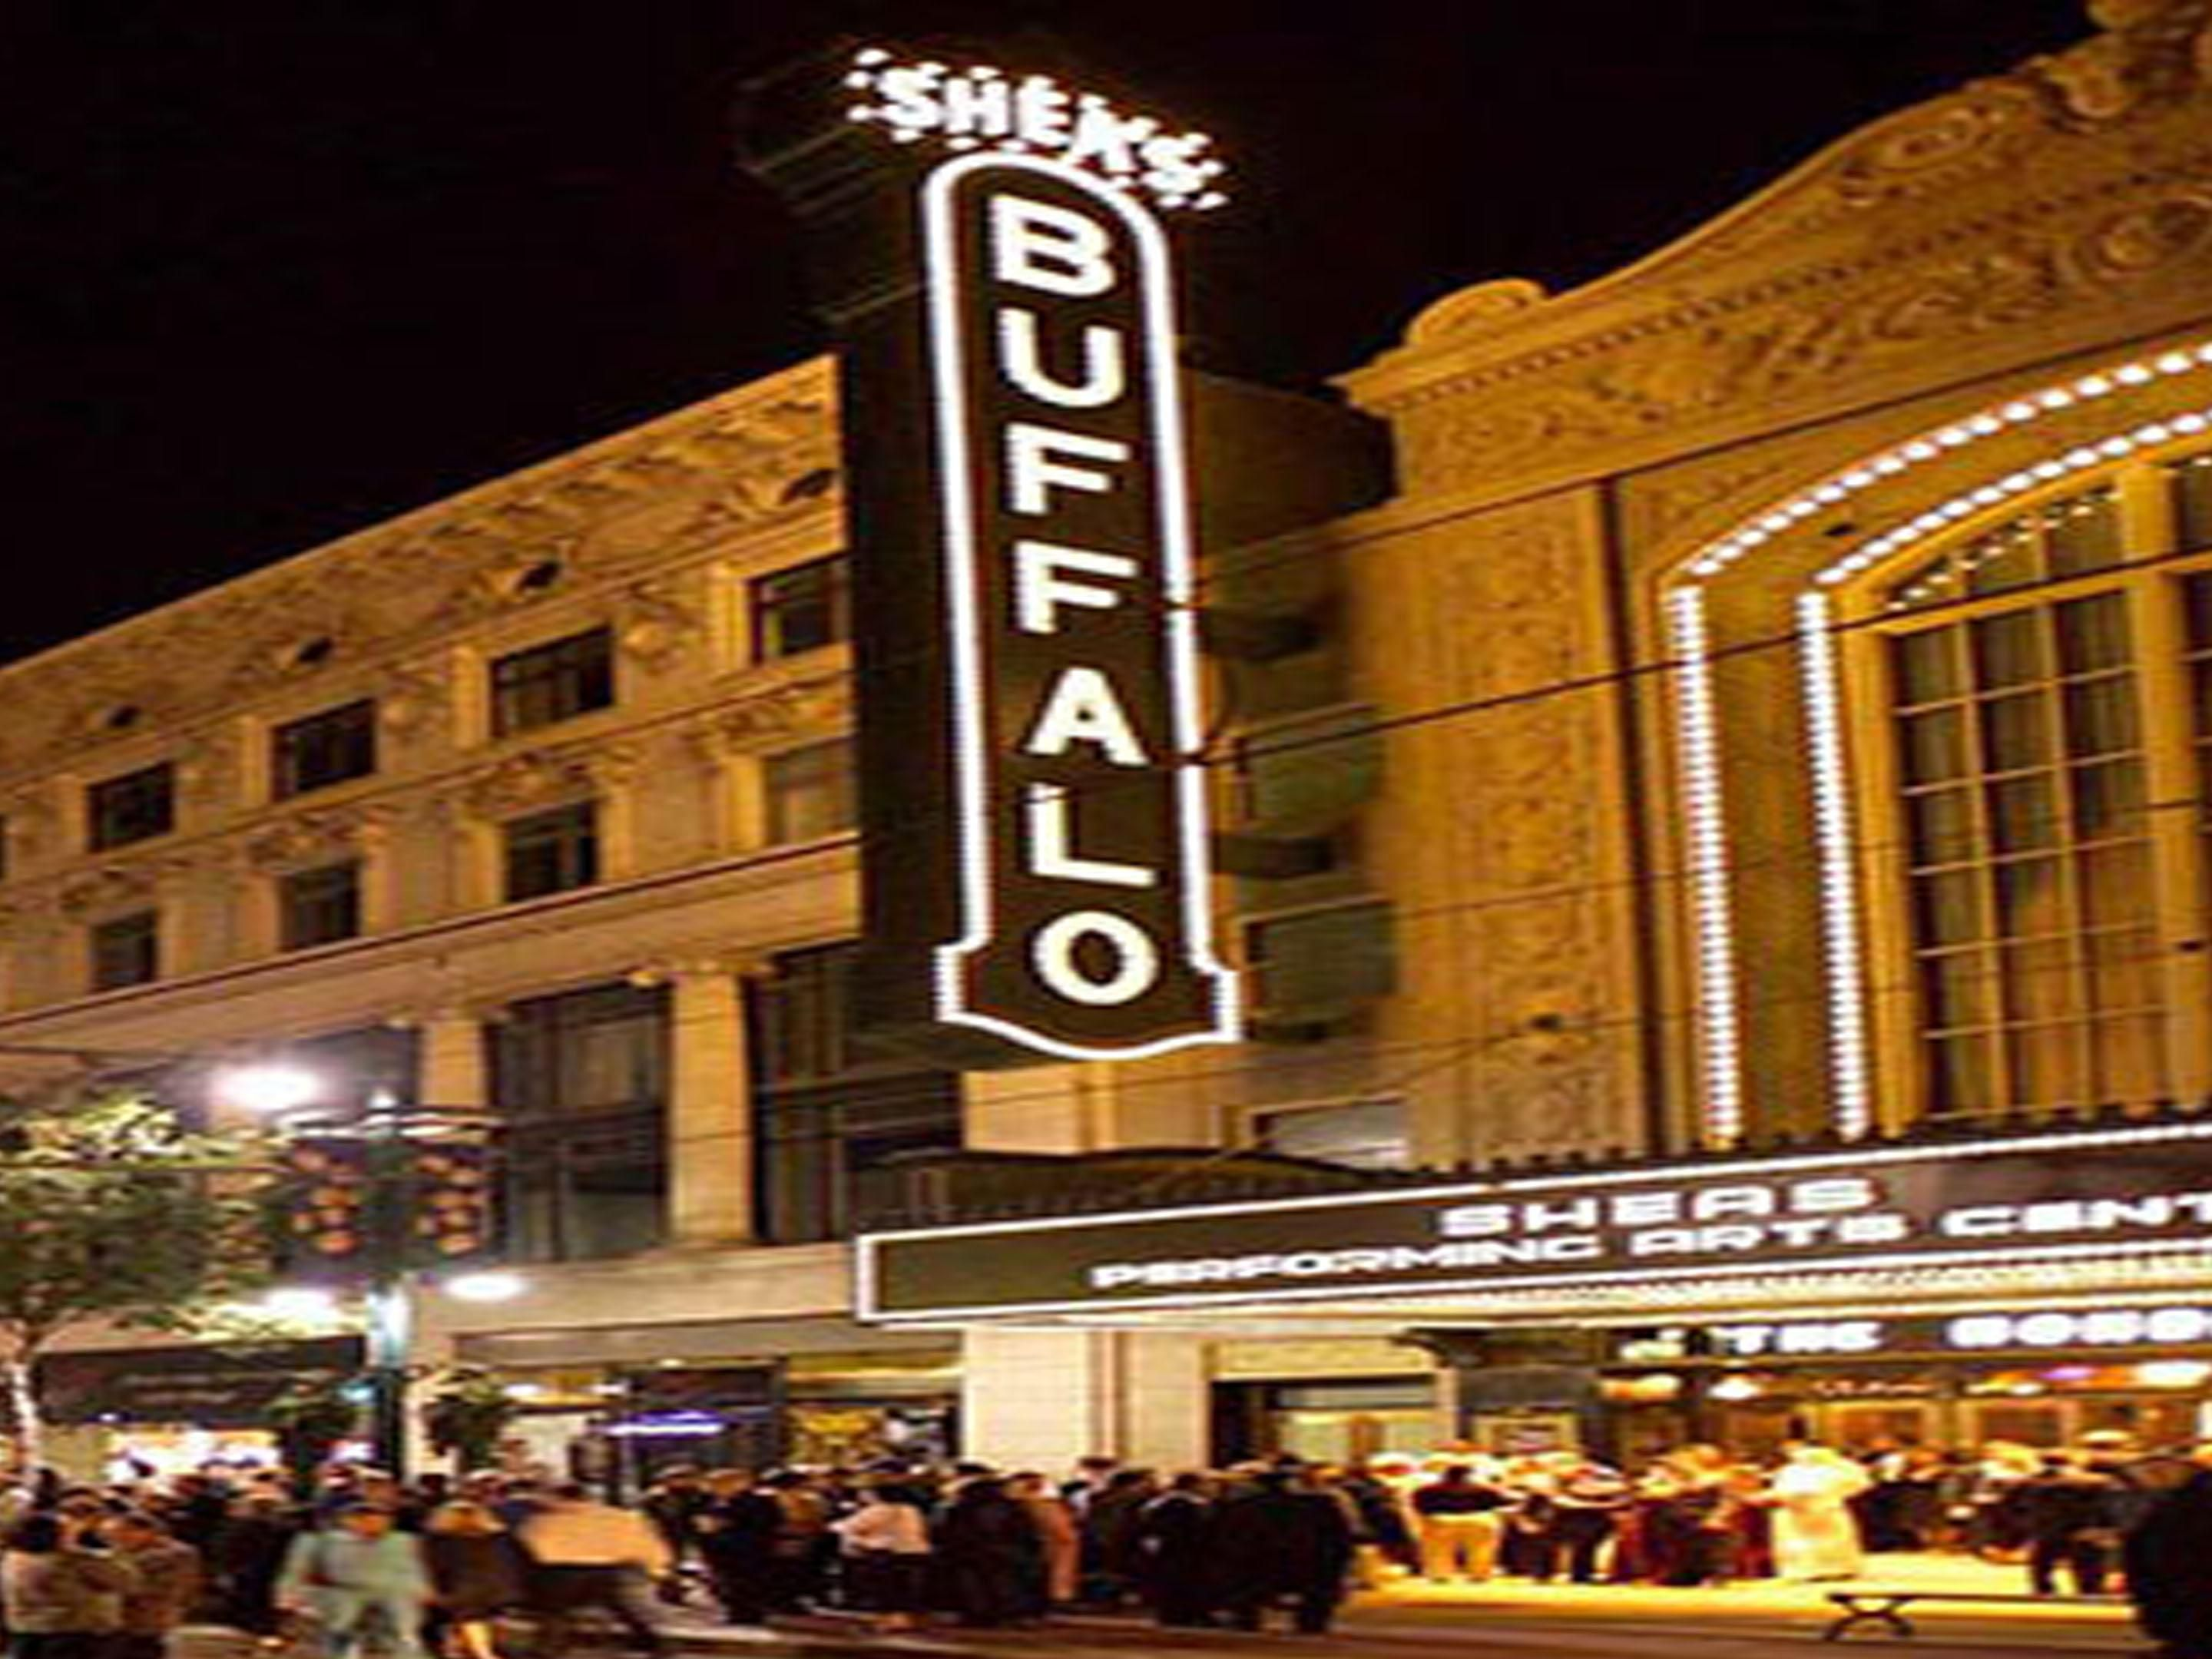 Short drive to downtown Buffalo.